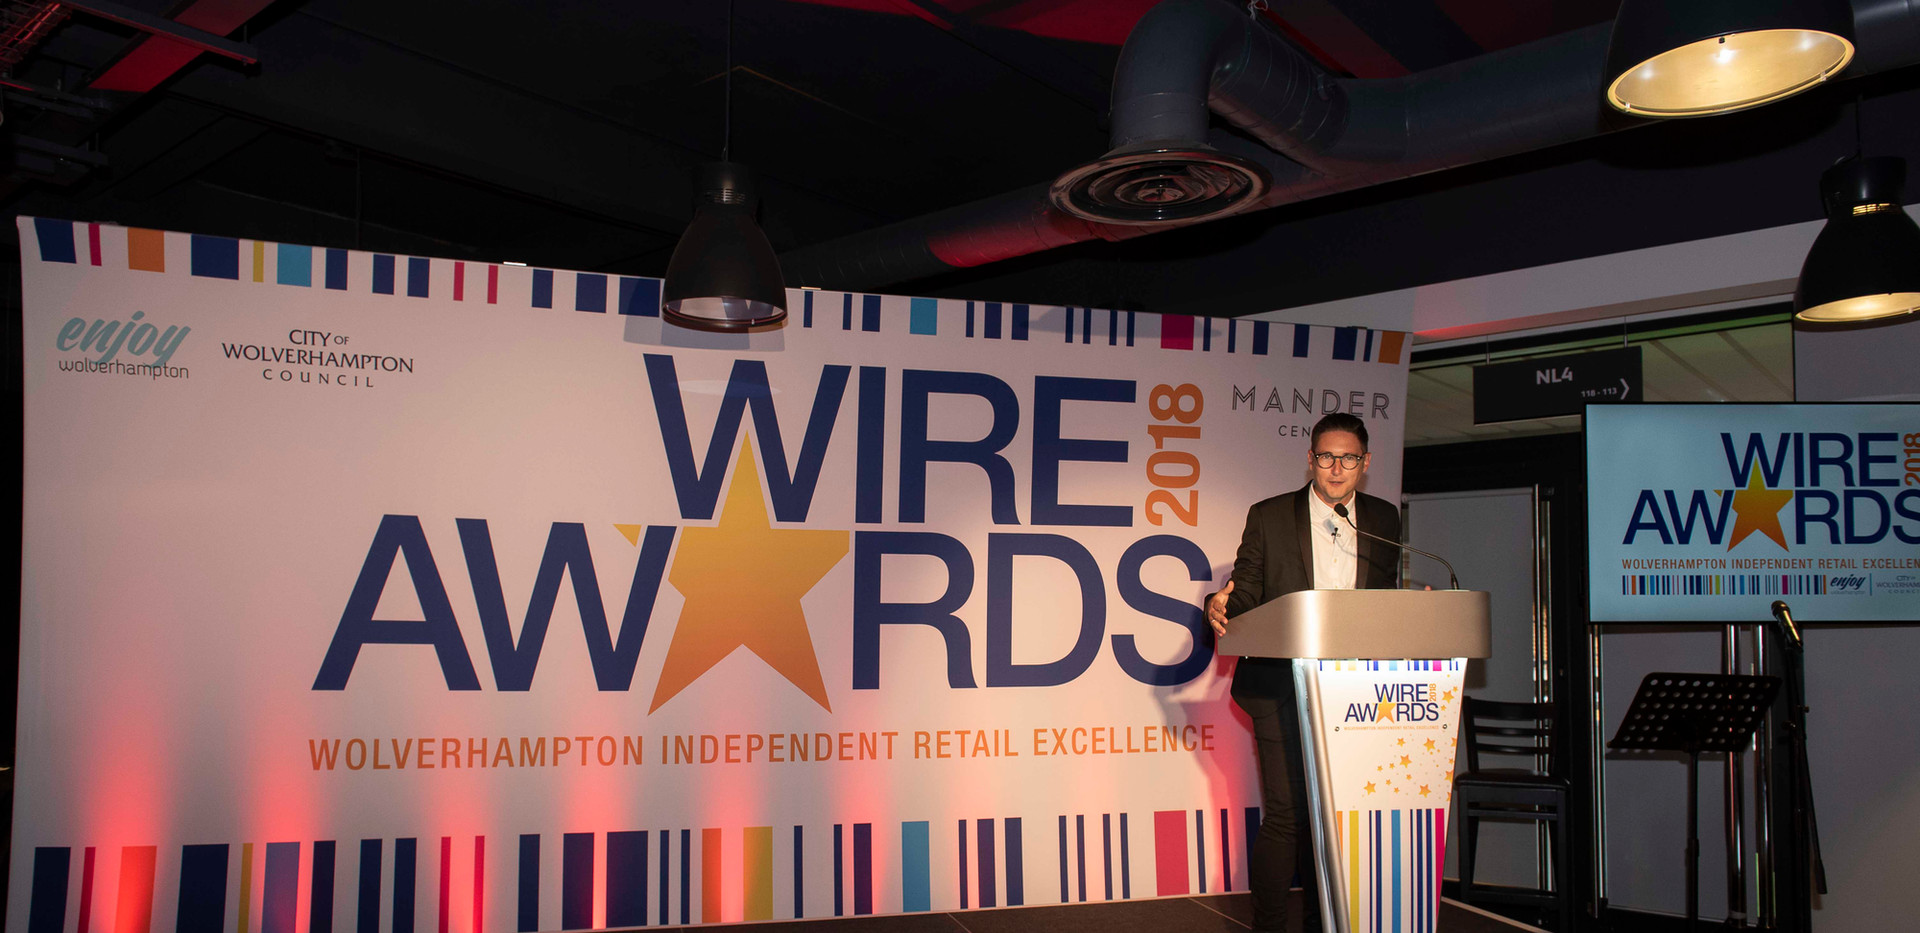 WIRE Award Winners 2018 - Employer of the Year ROOT 66 Hair Care, Bilston.